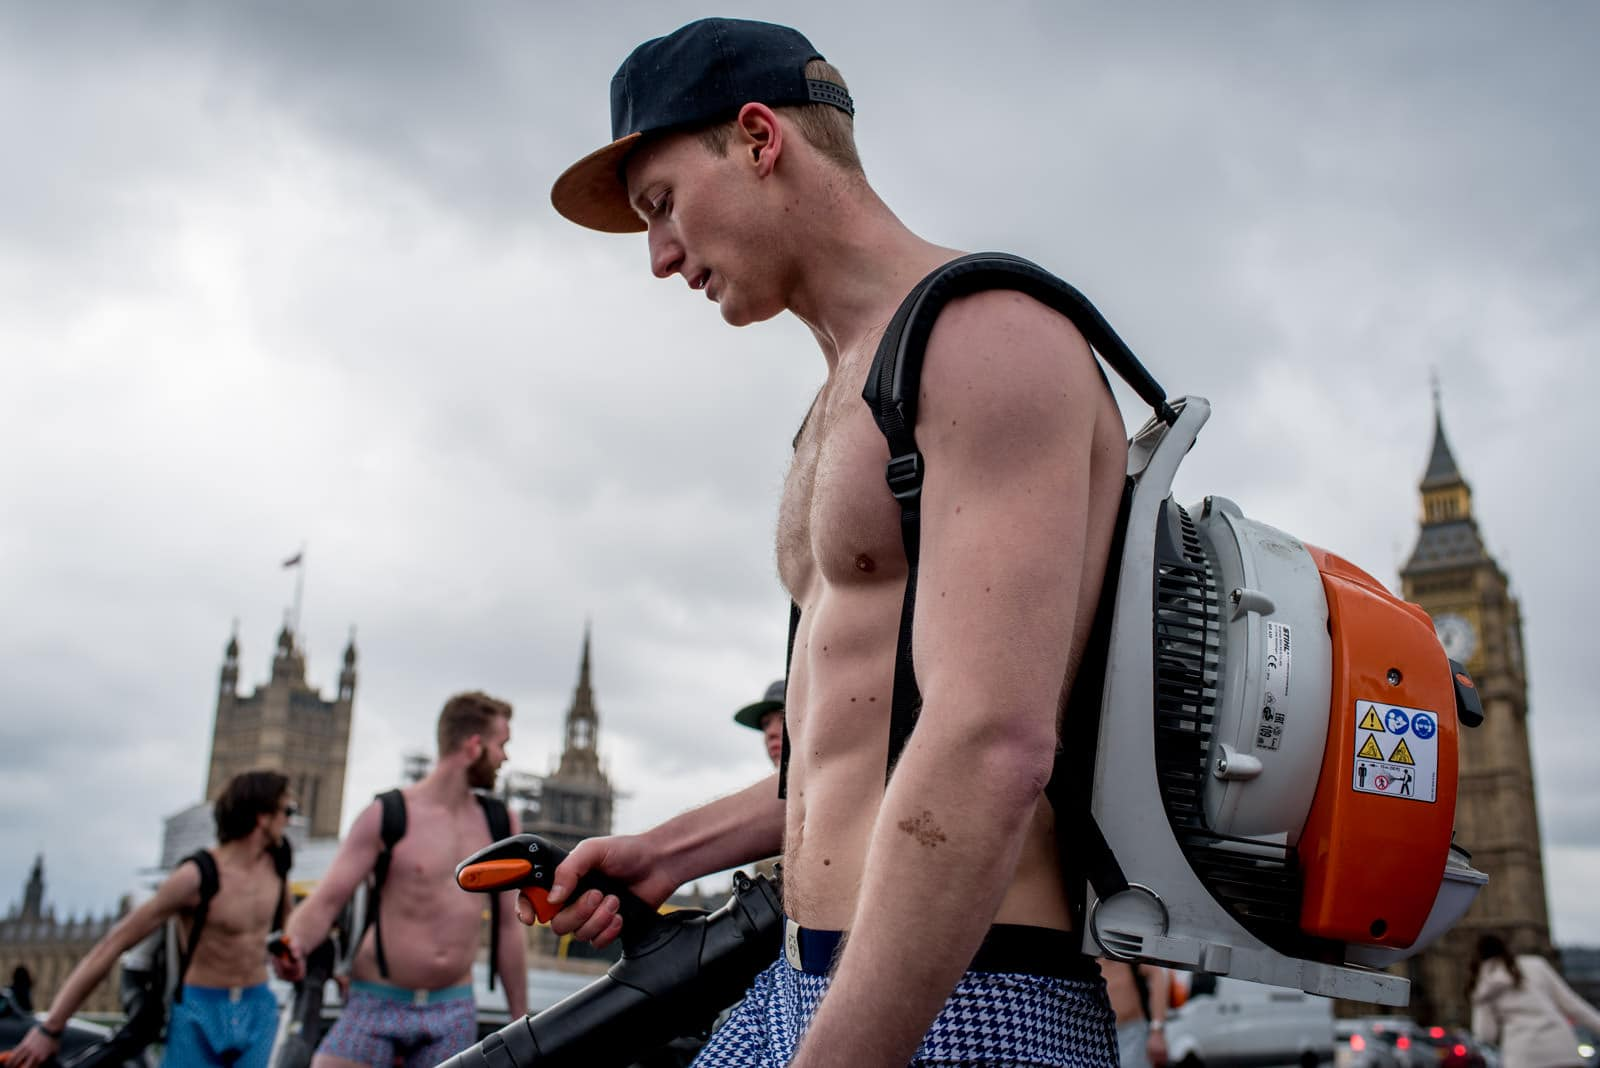 A semi naked man with a leaf blower and skateboard racing on Westminster Bridge in front of Parliament in London